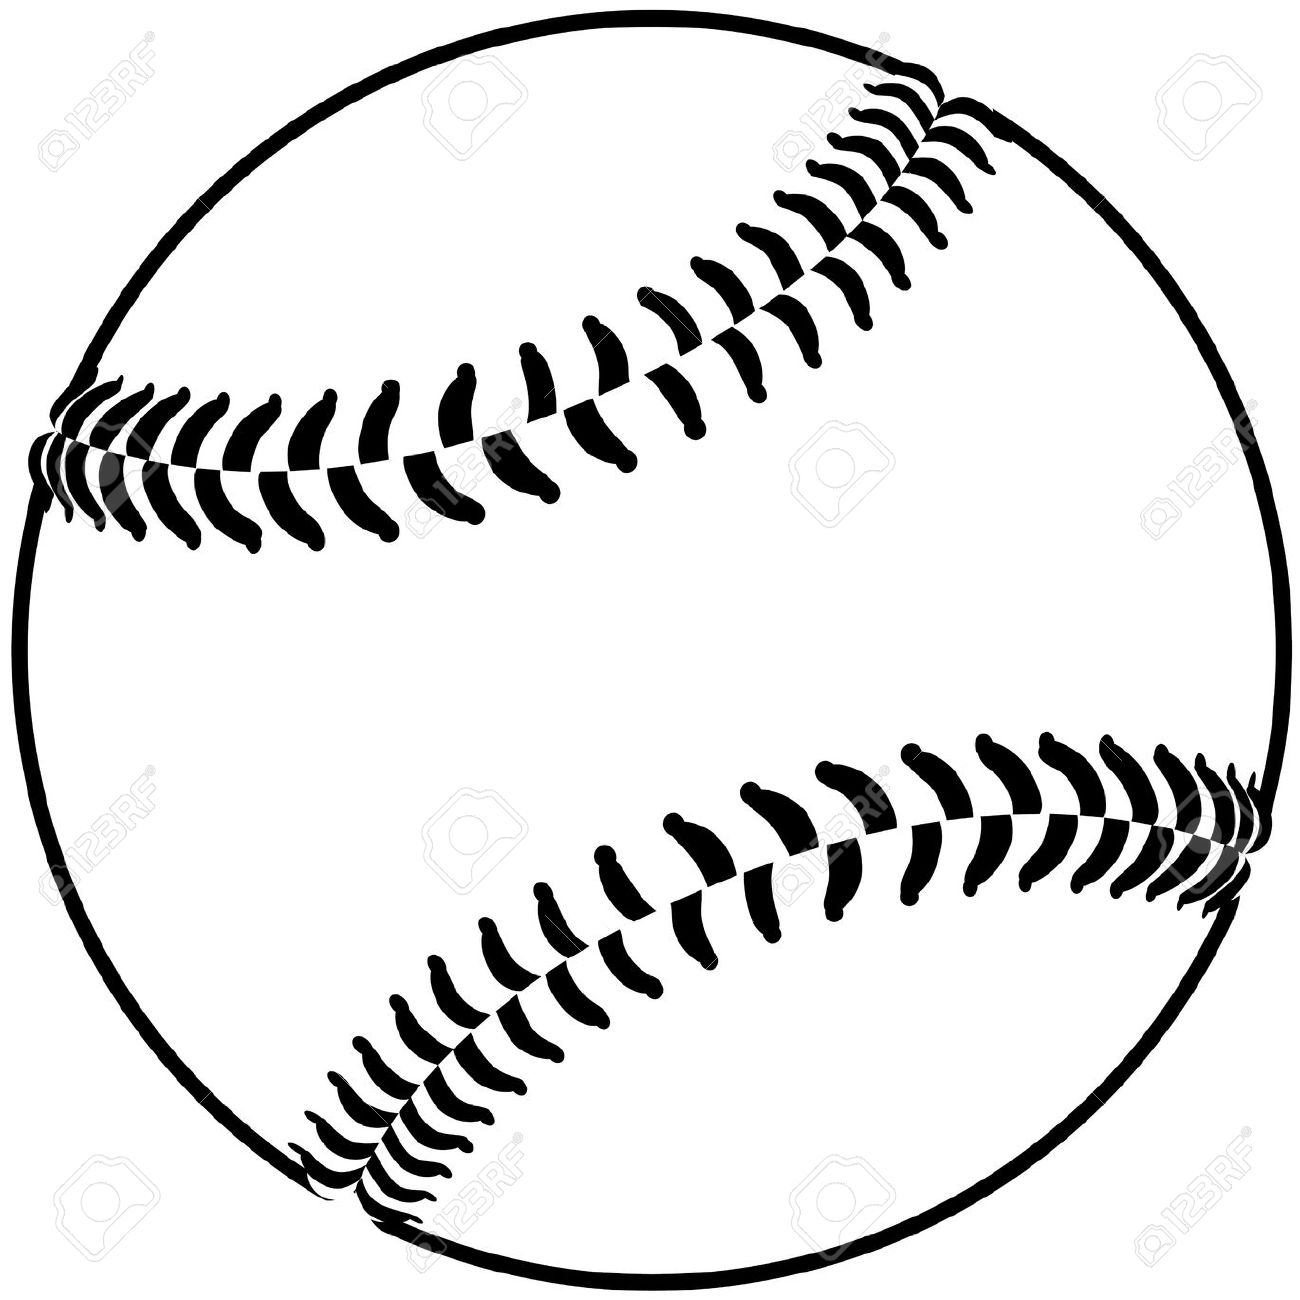 Softball clipart black and white clipground for Softball vector free